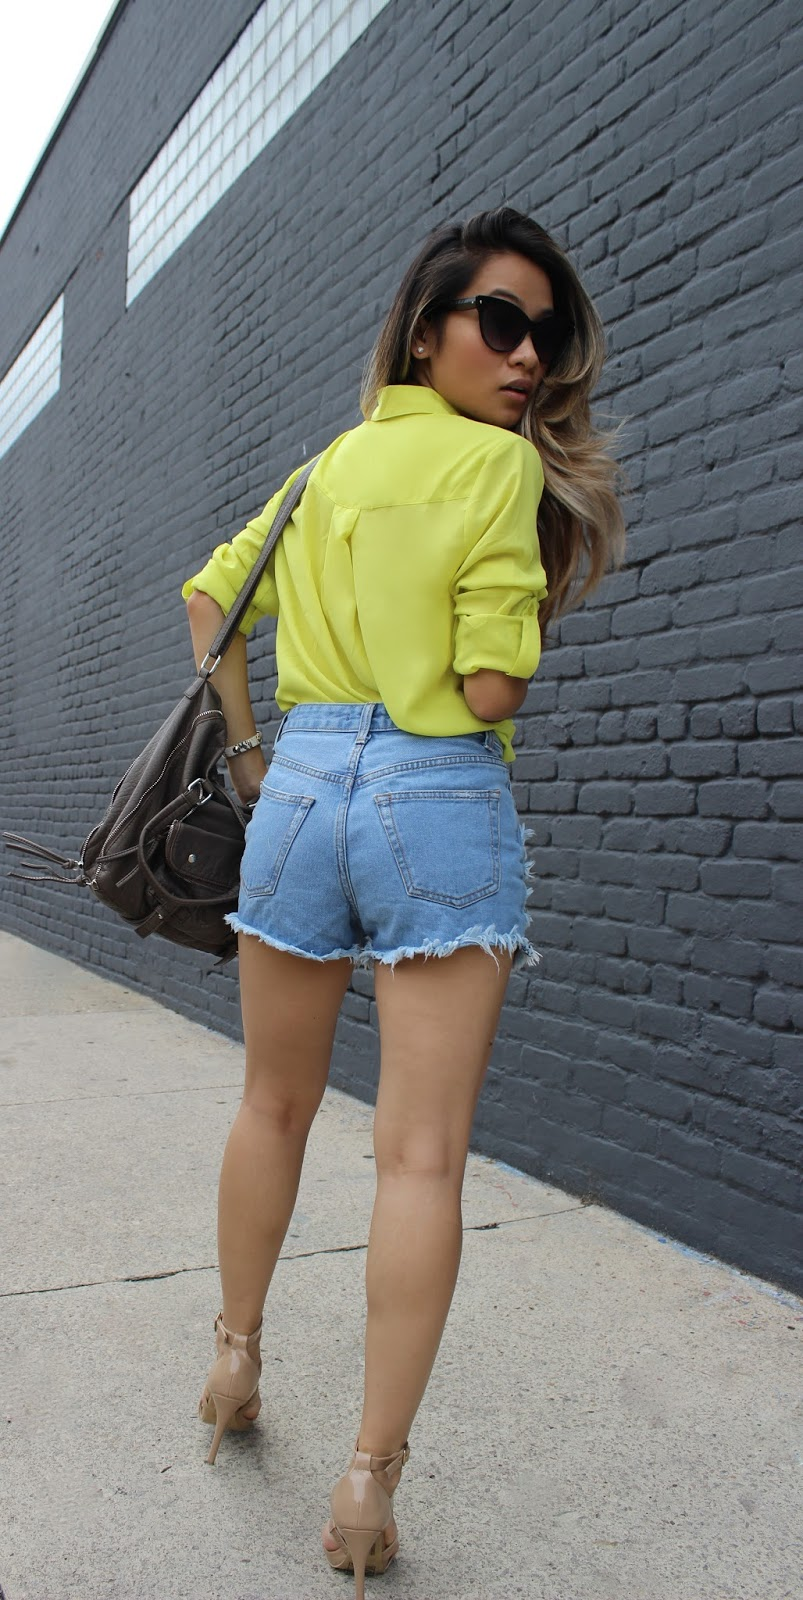 boyfriend shorts, melba nguyen, celine sunglasses, forever21 nude heels, ombre hair, fall fashion, sole trekking, new york fashion week, vietnamese fashion blogger